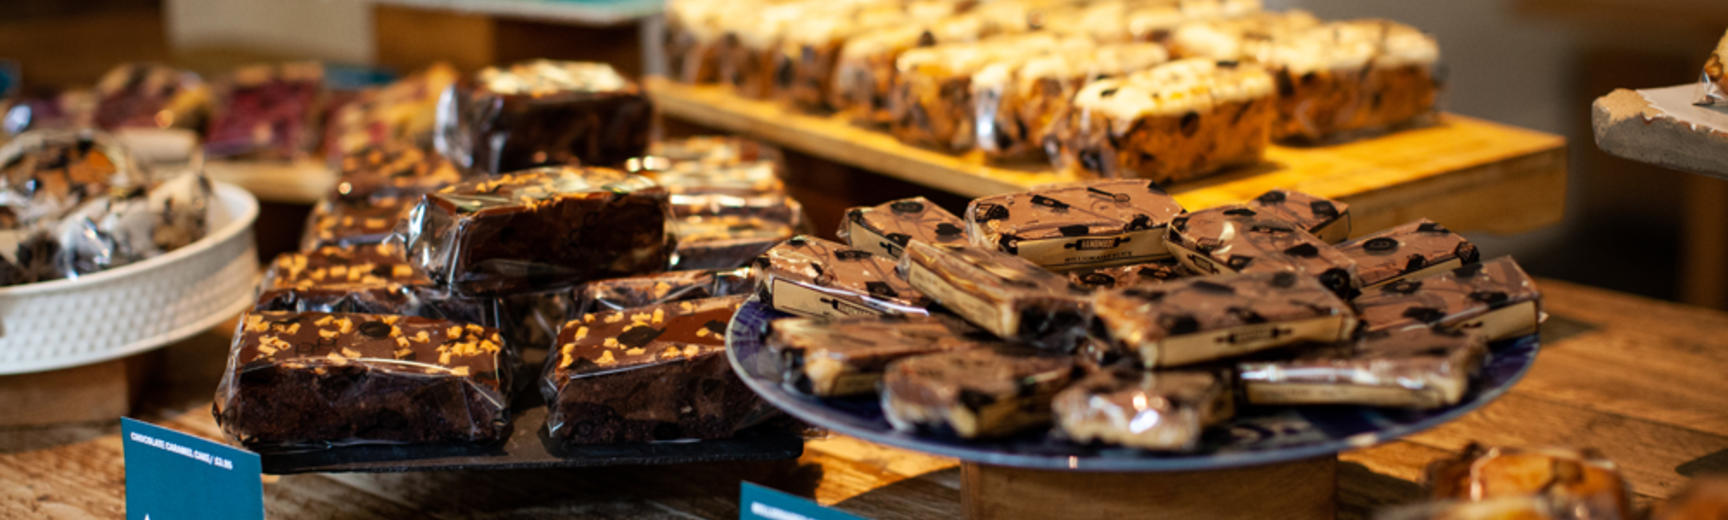 Brownies and cake slices displayed on a table